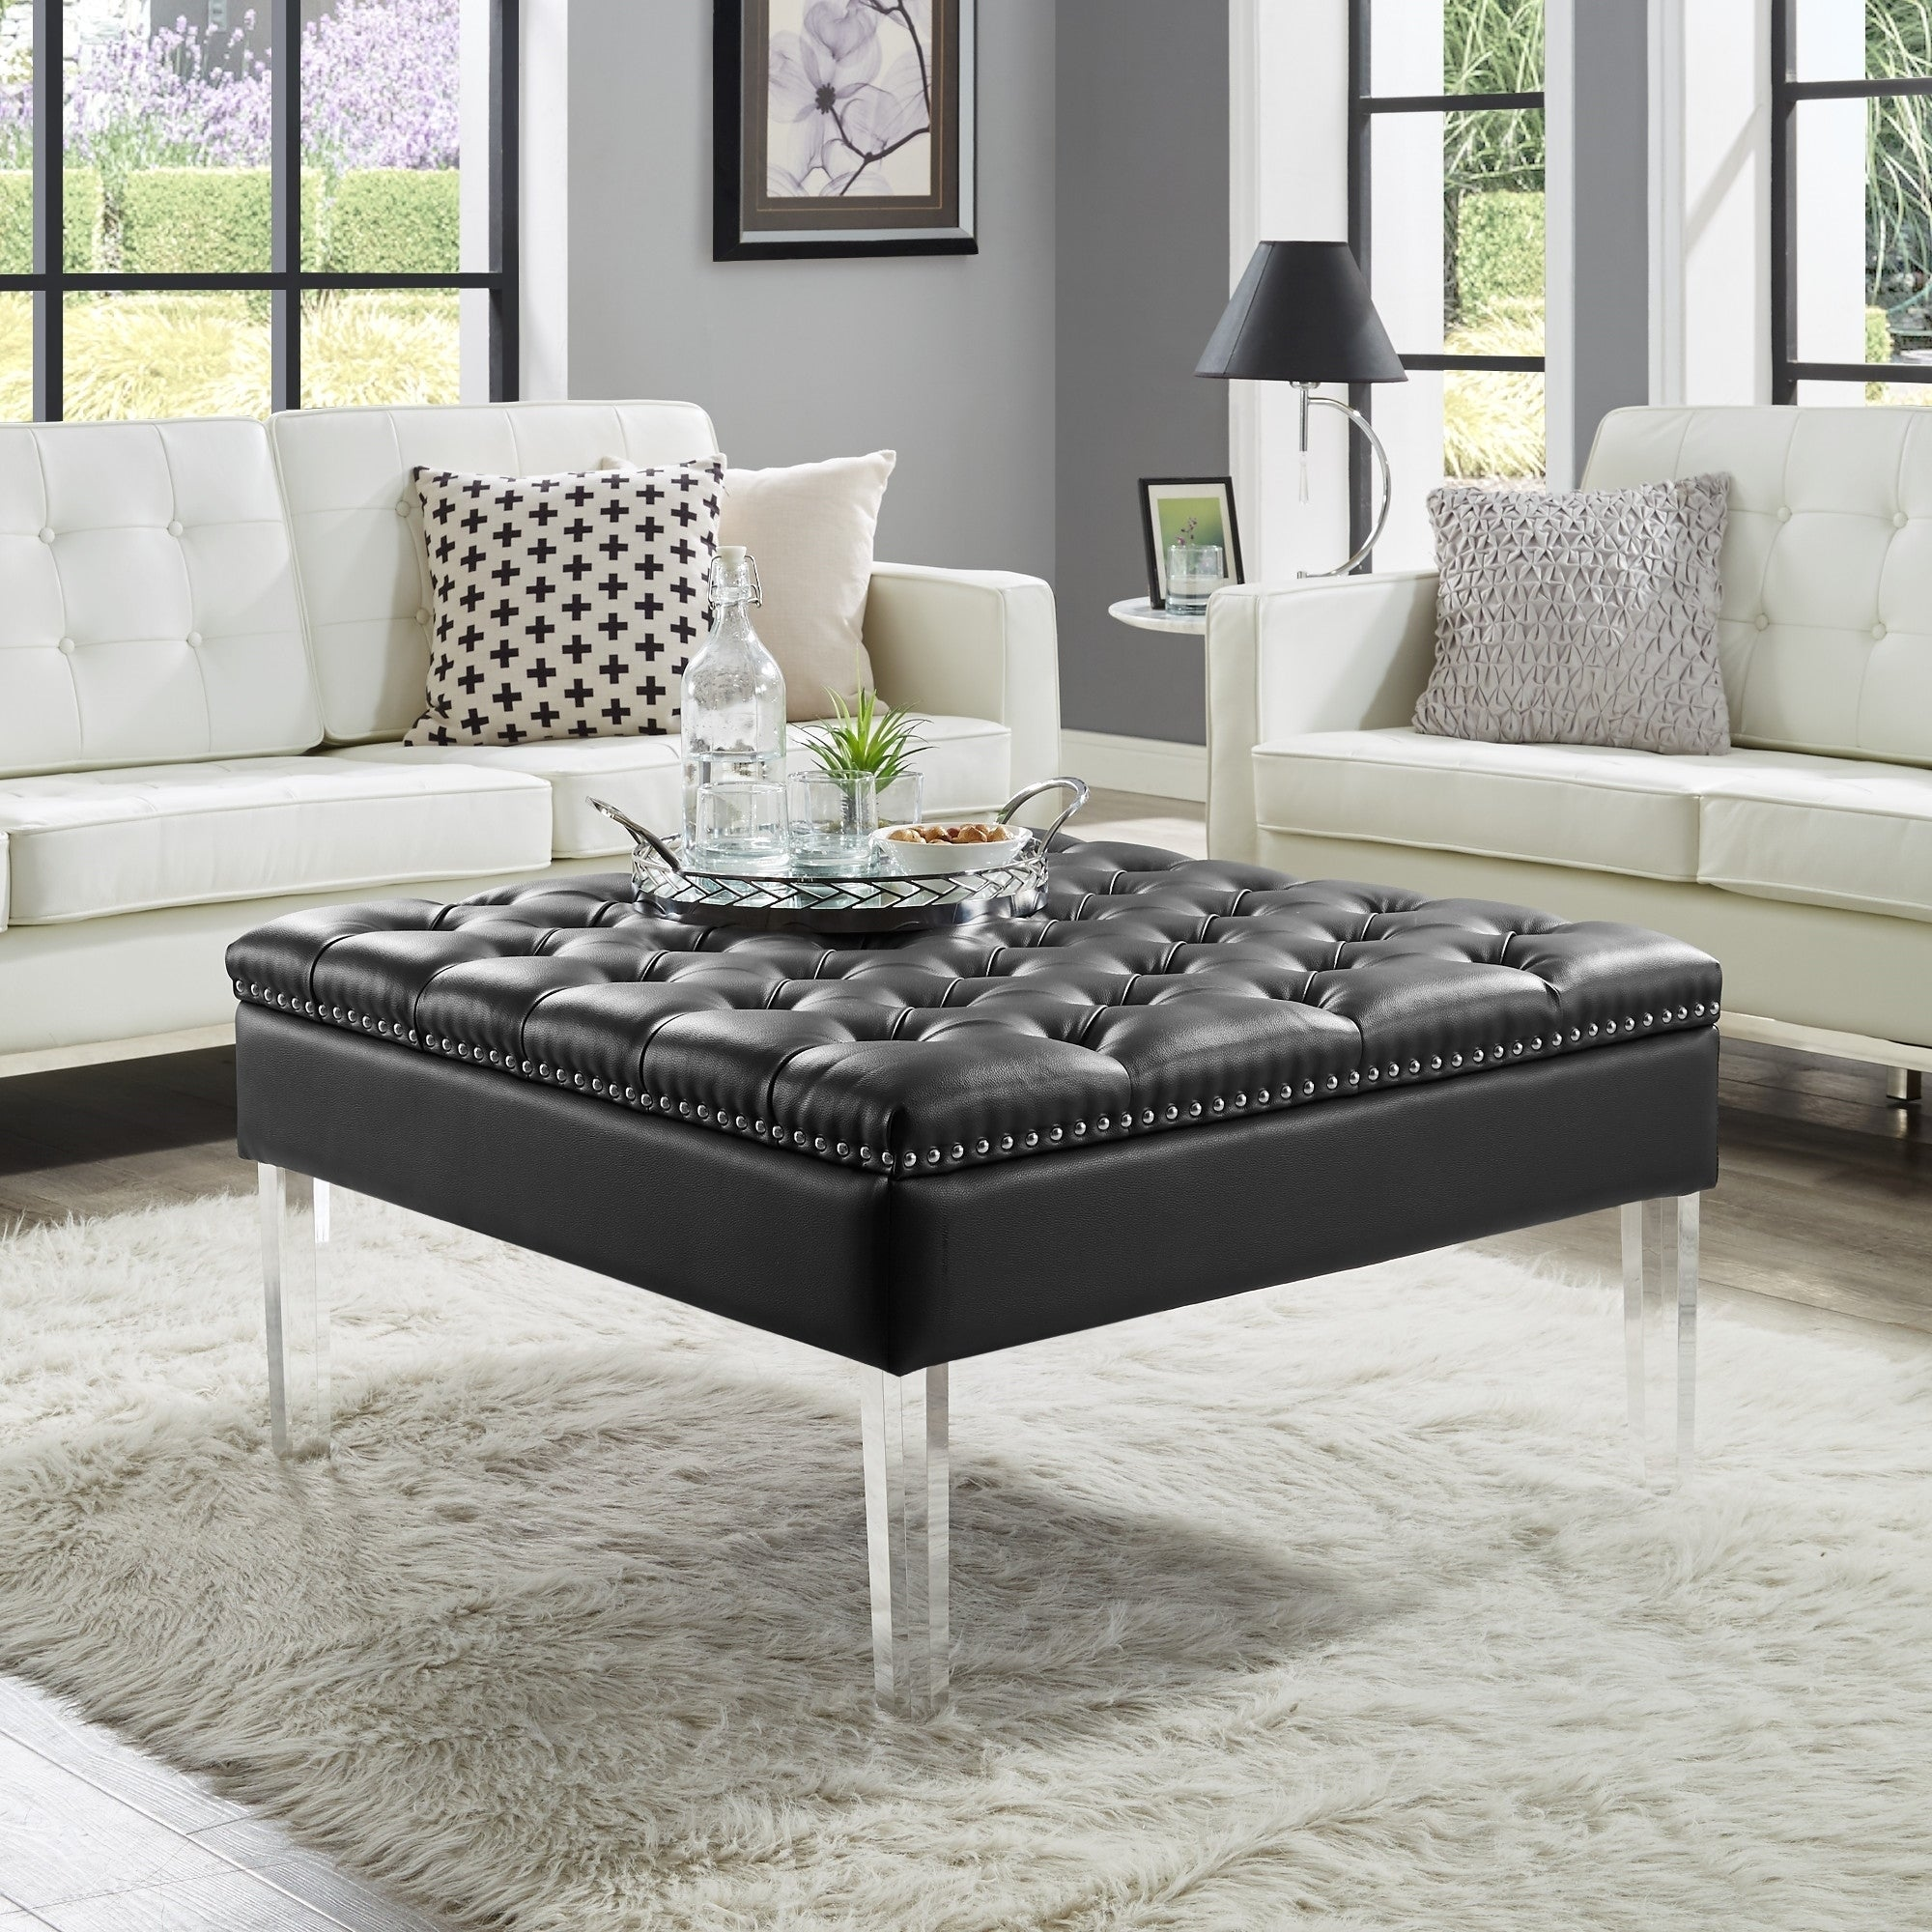 design coffee ottoman breathtaking table tufted innovative furniture with